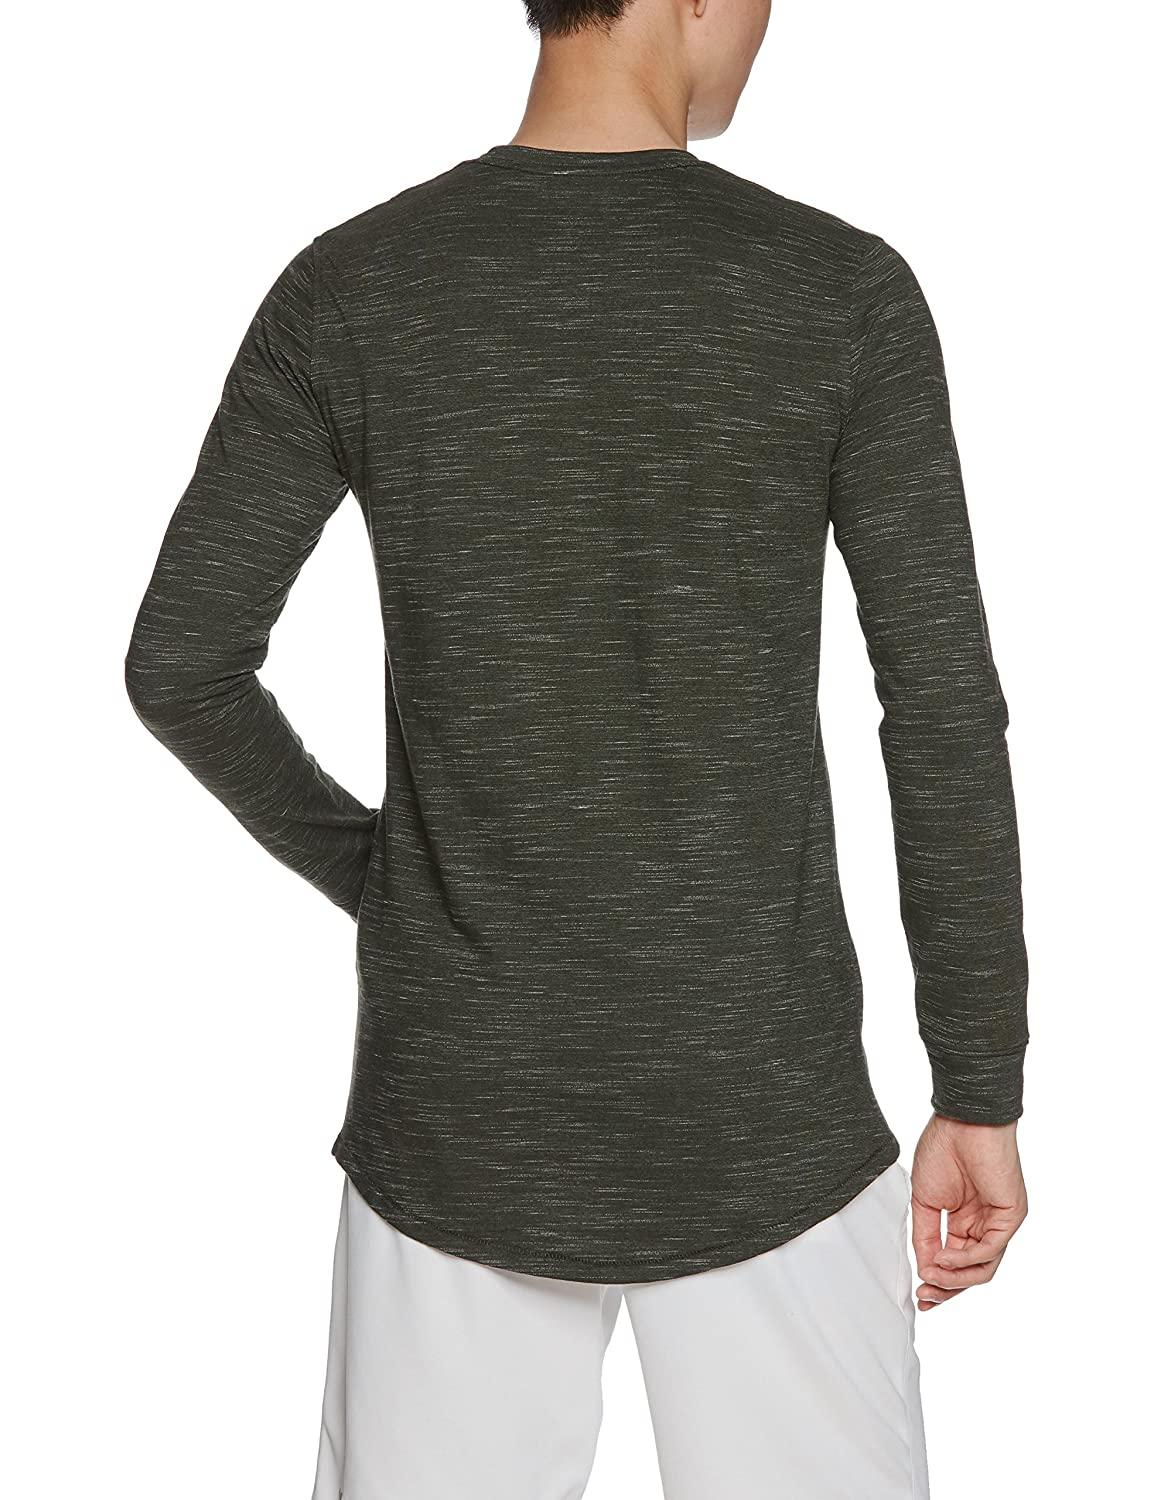 Under Armour Mens Sportstyle Long Sleeve T-Shirt